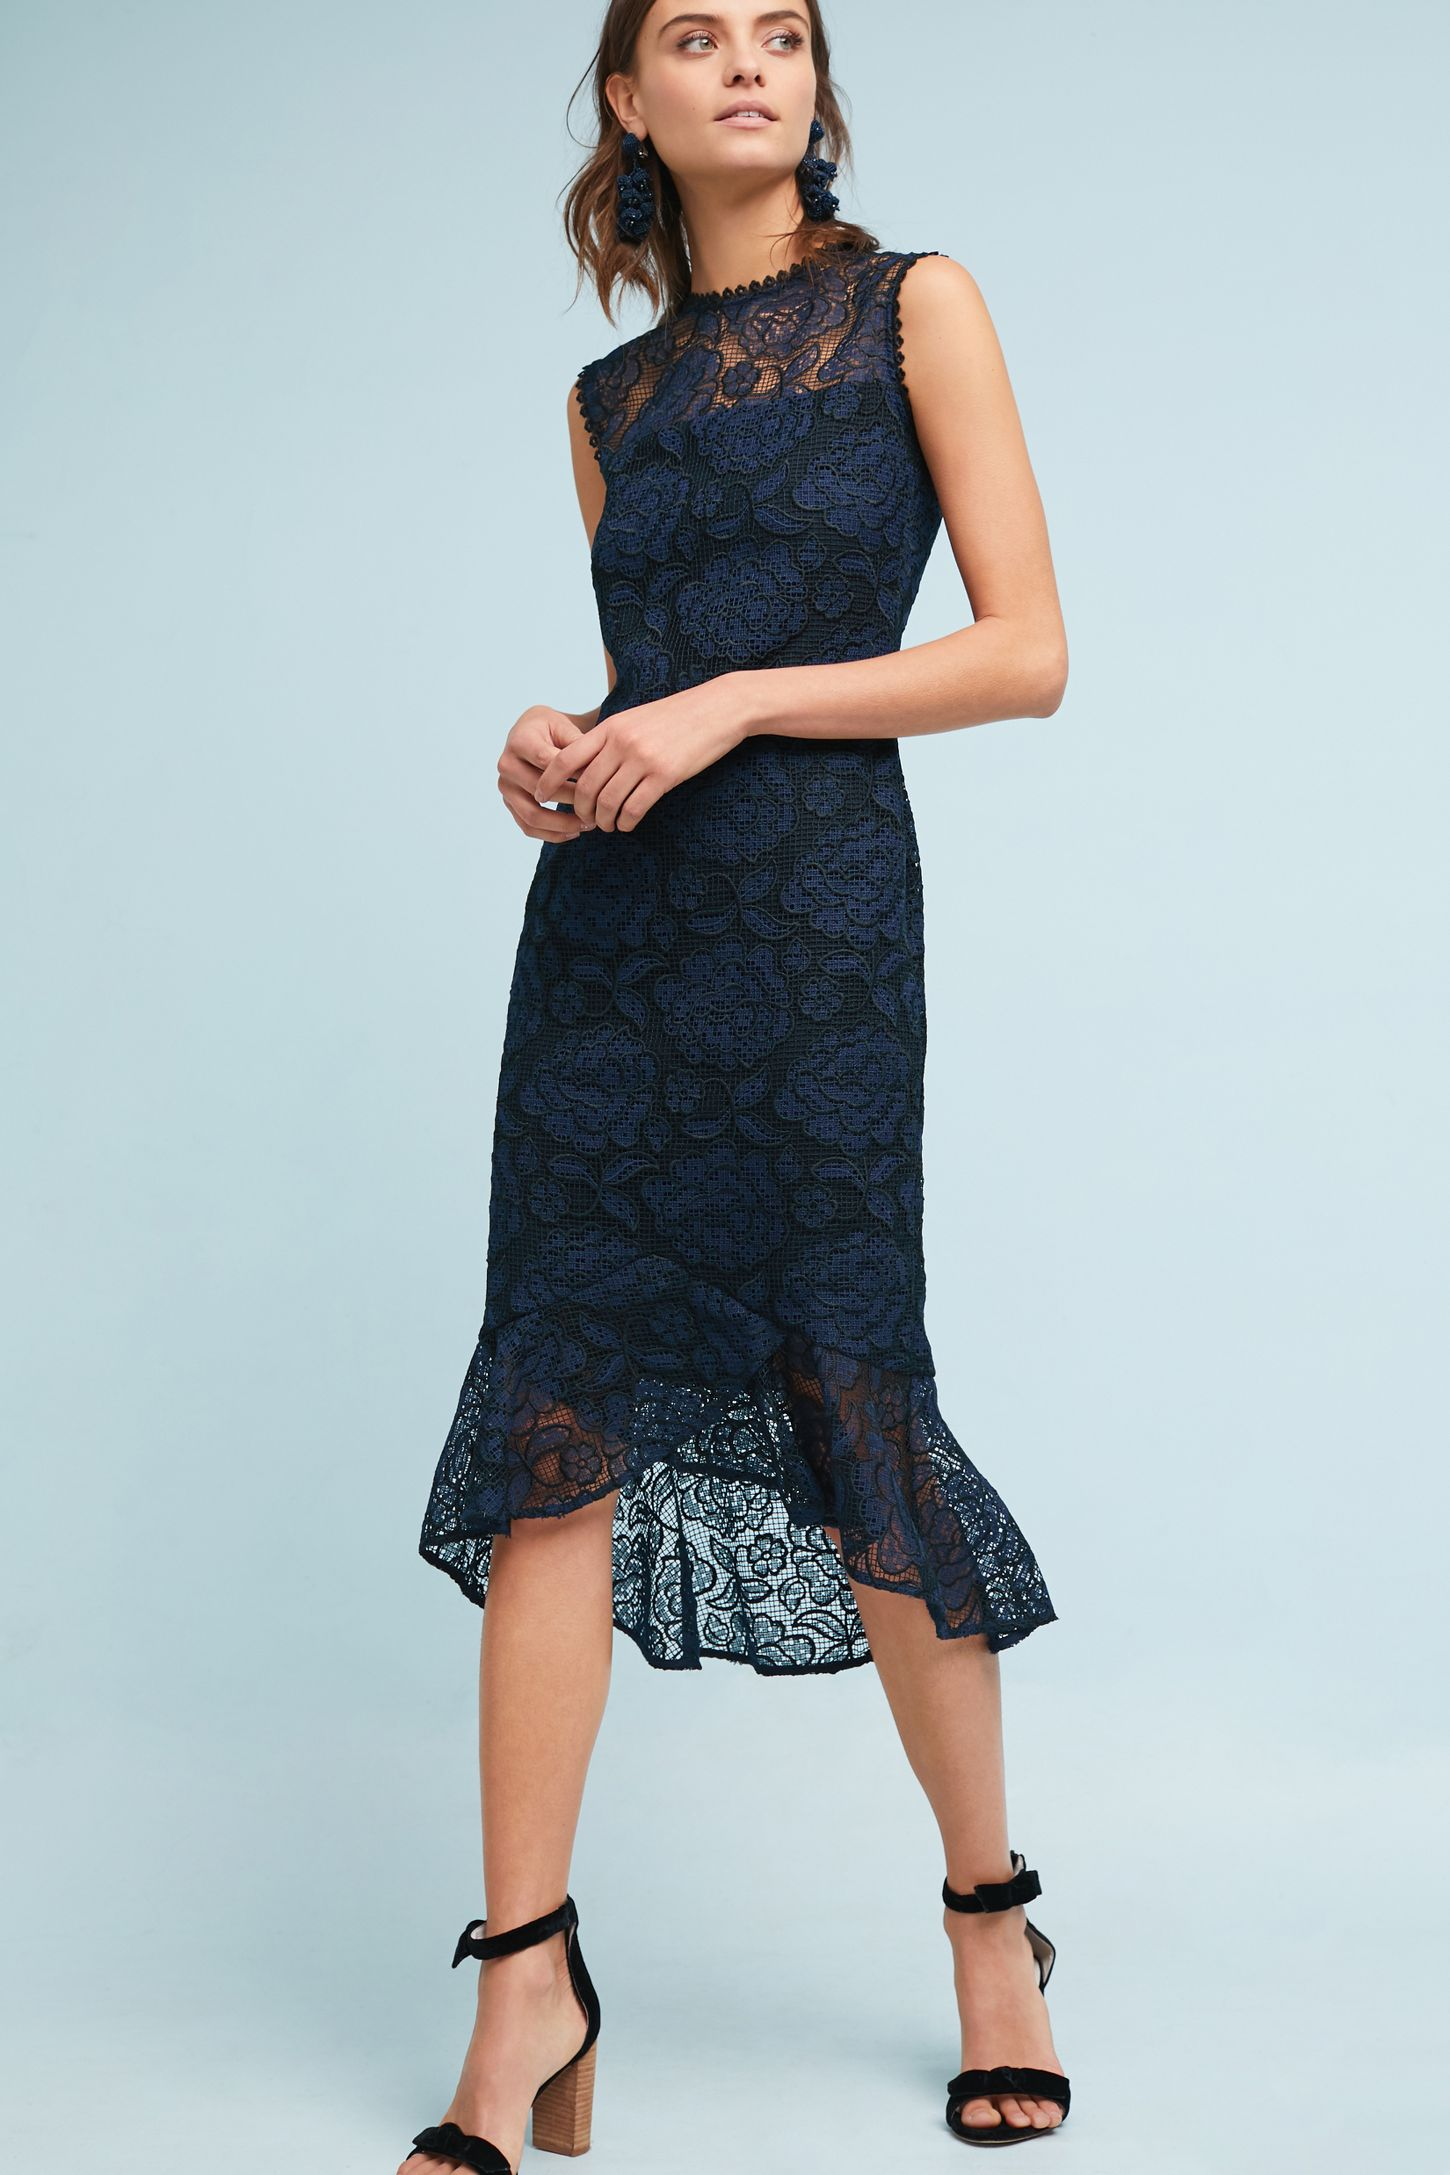 Blue - Wedding Guest Dresses | Anthropologie